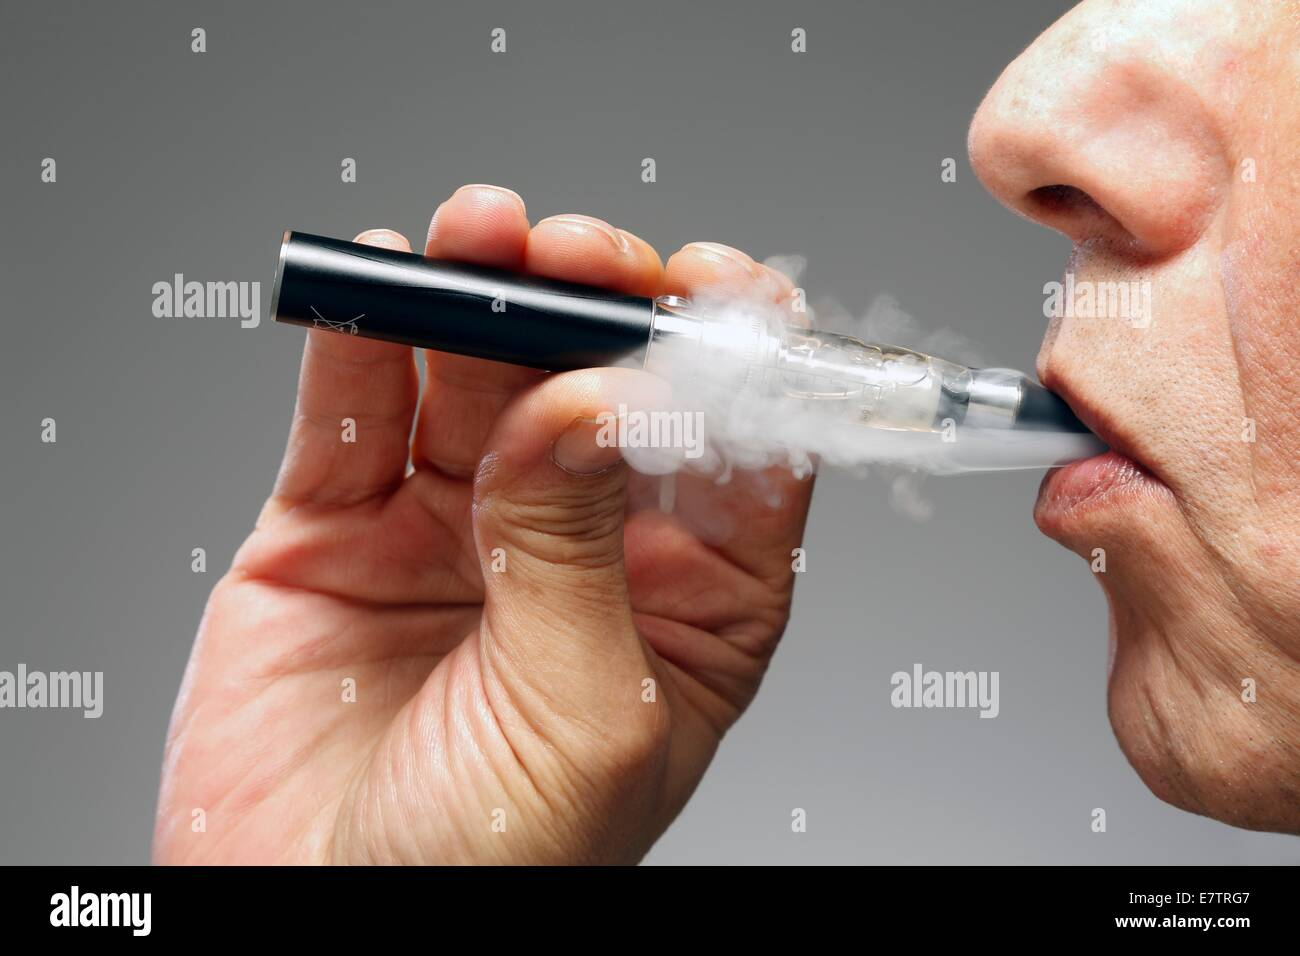 MODEL RELEASED. Person smoking e cigarette. - Stock Image